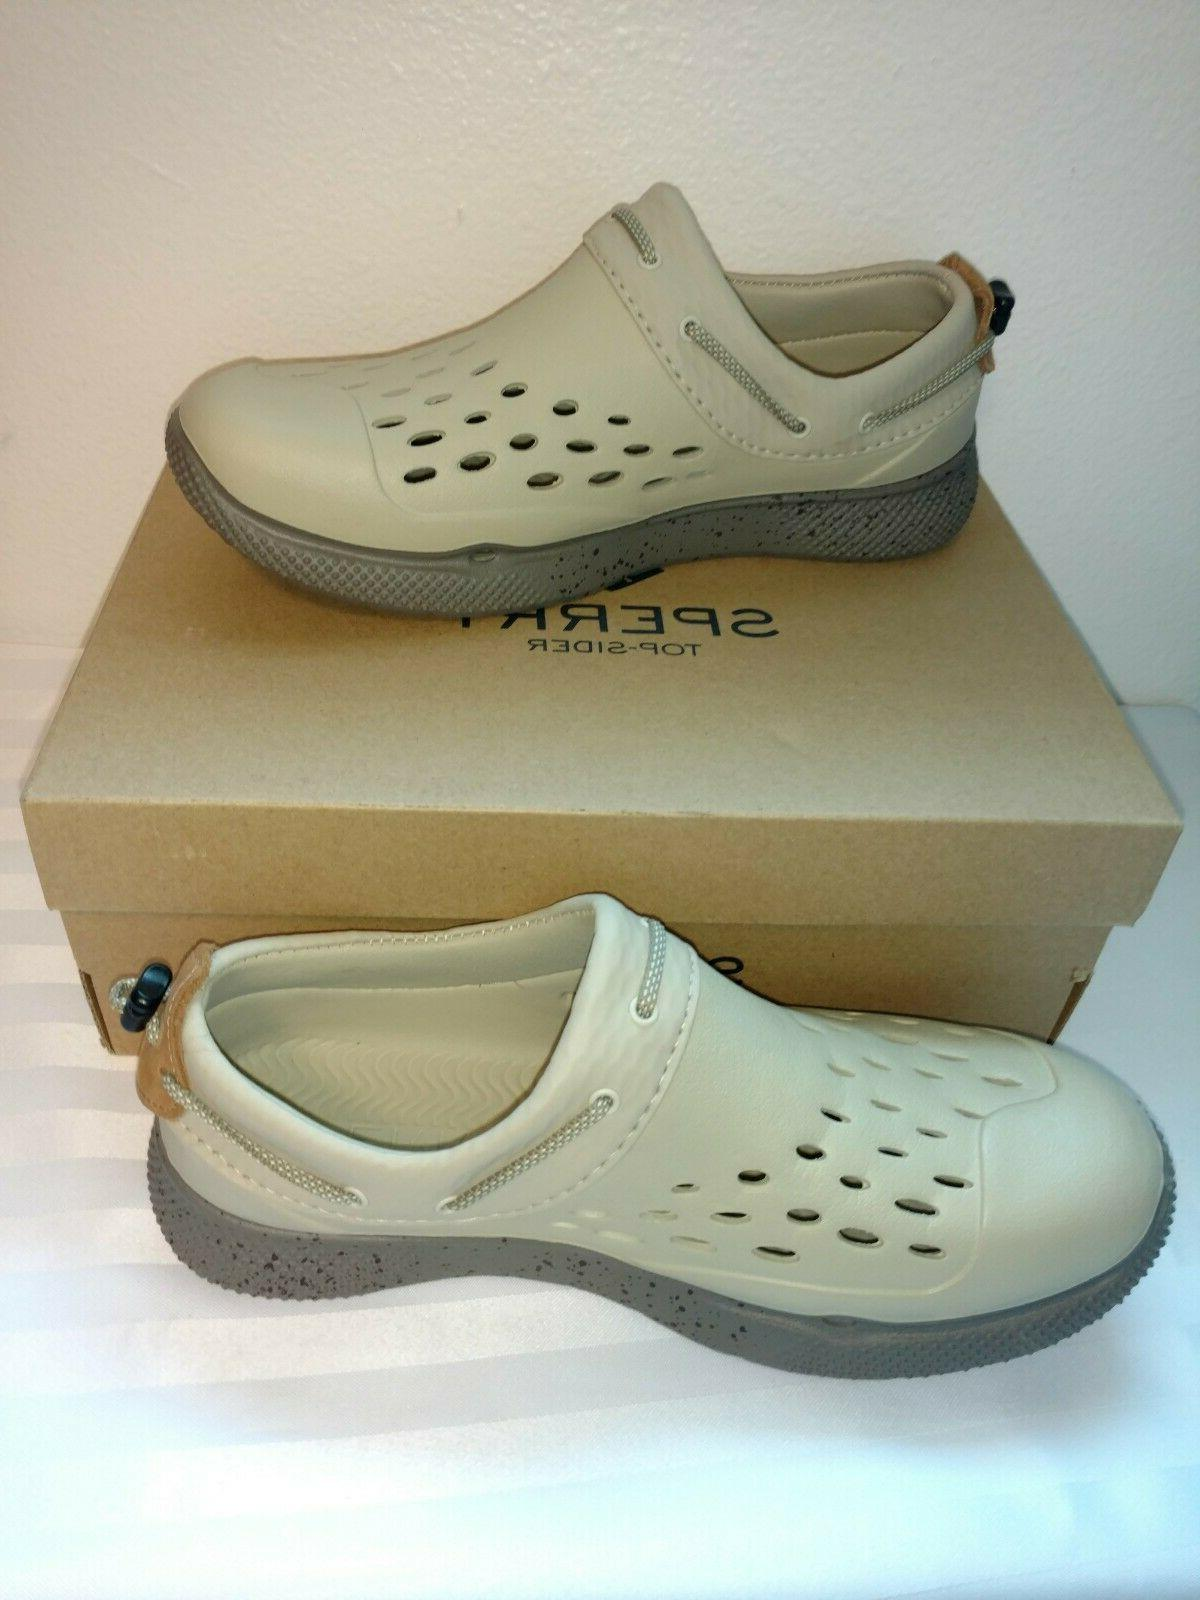 new men s 8m sperry top sider